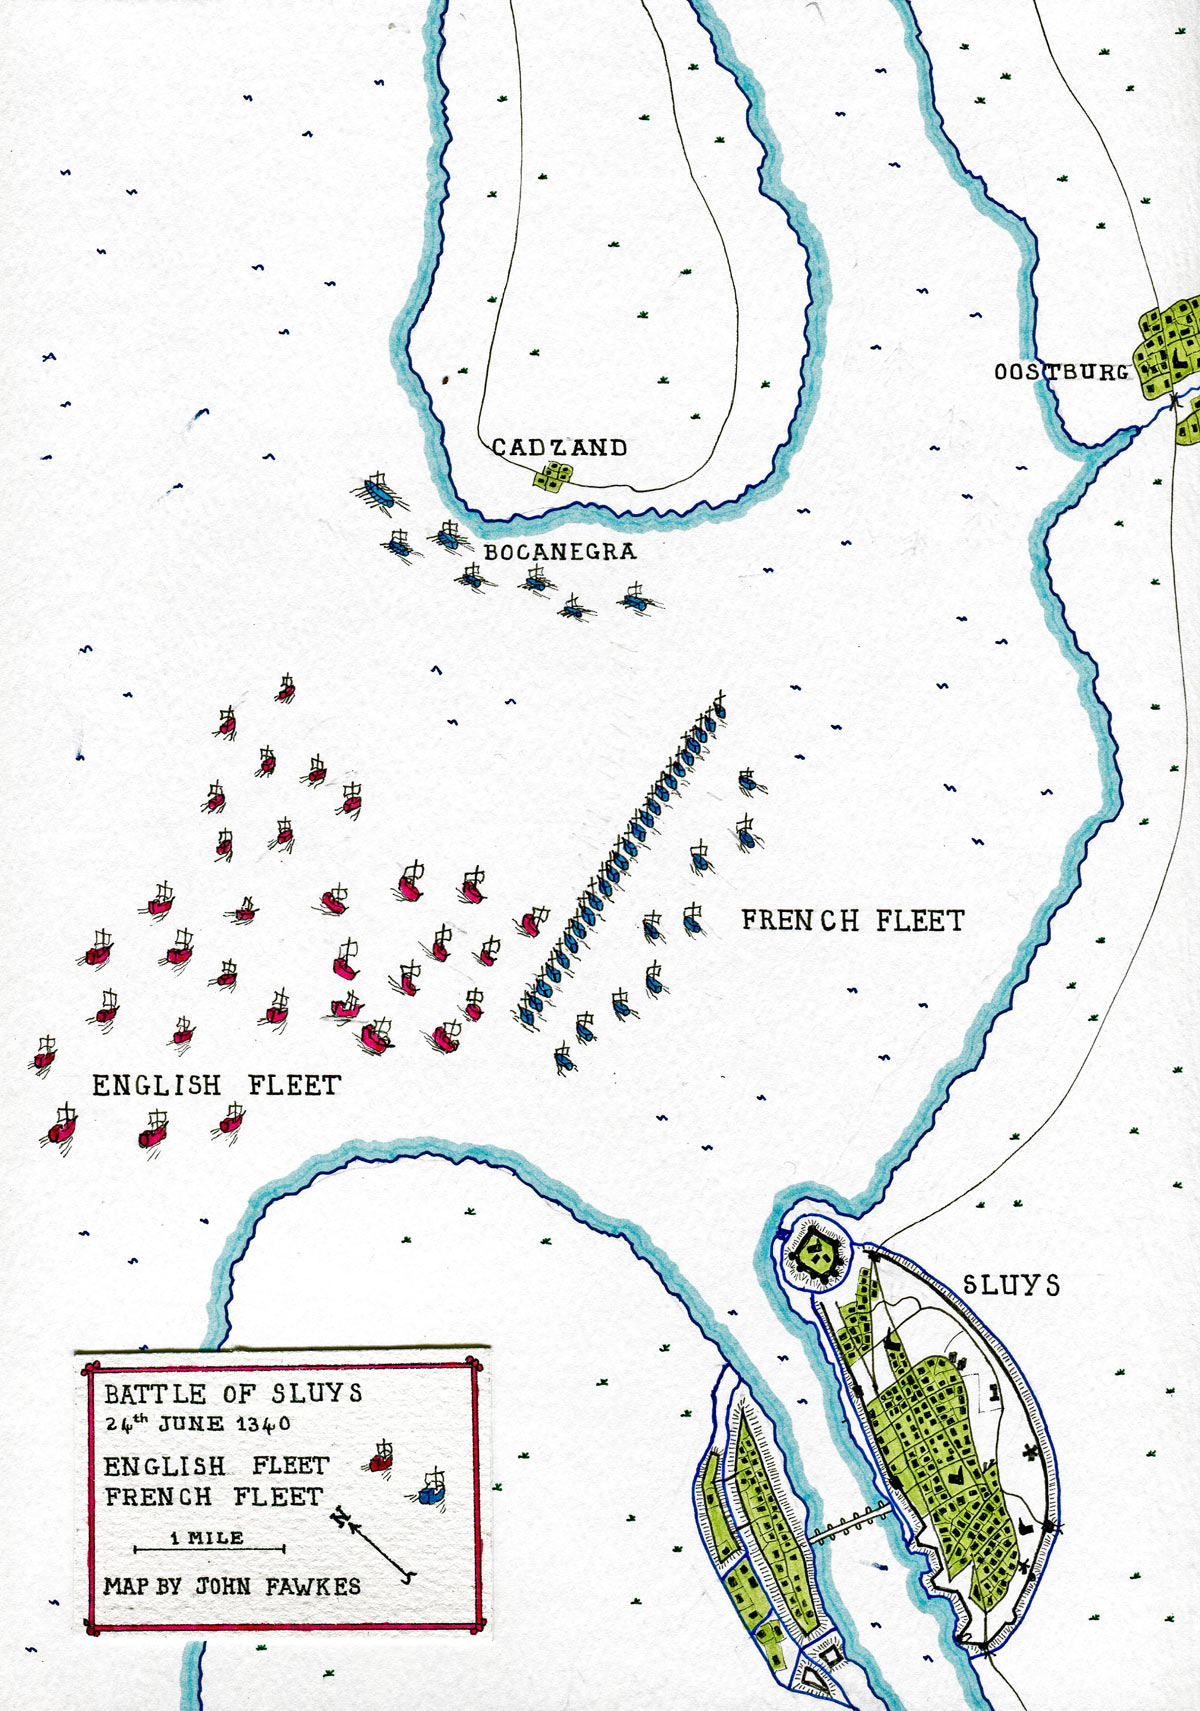 Battle of Sluys 24th June 1340: map by John Fawkes